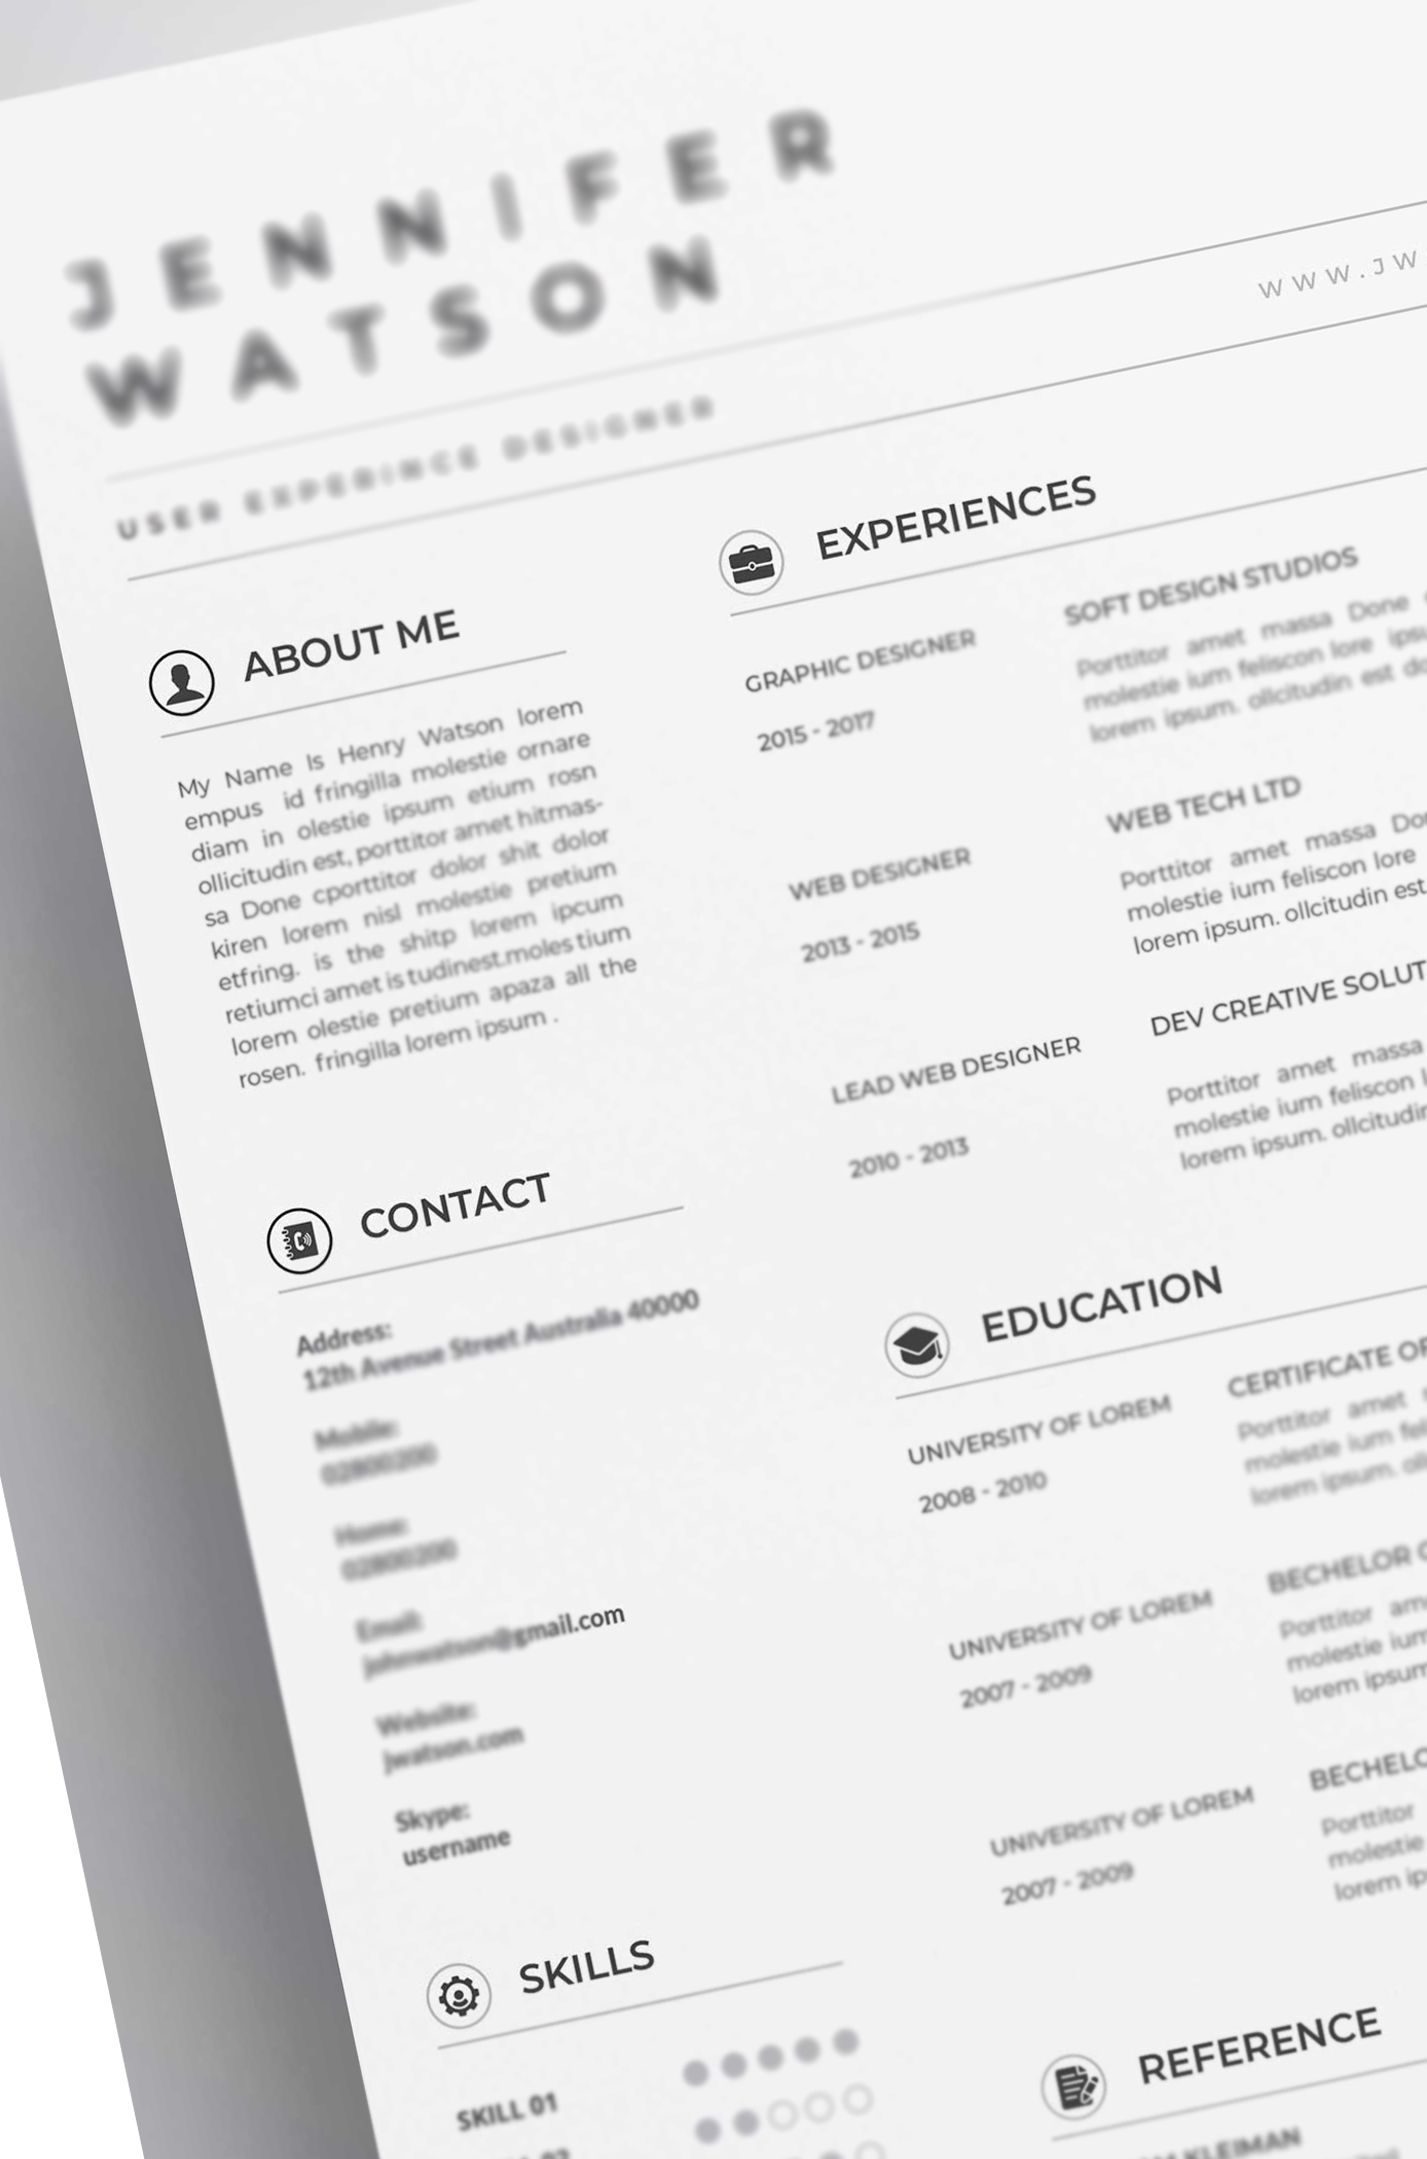 Generic picture of a resume